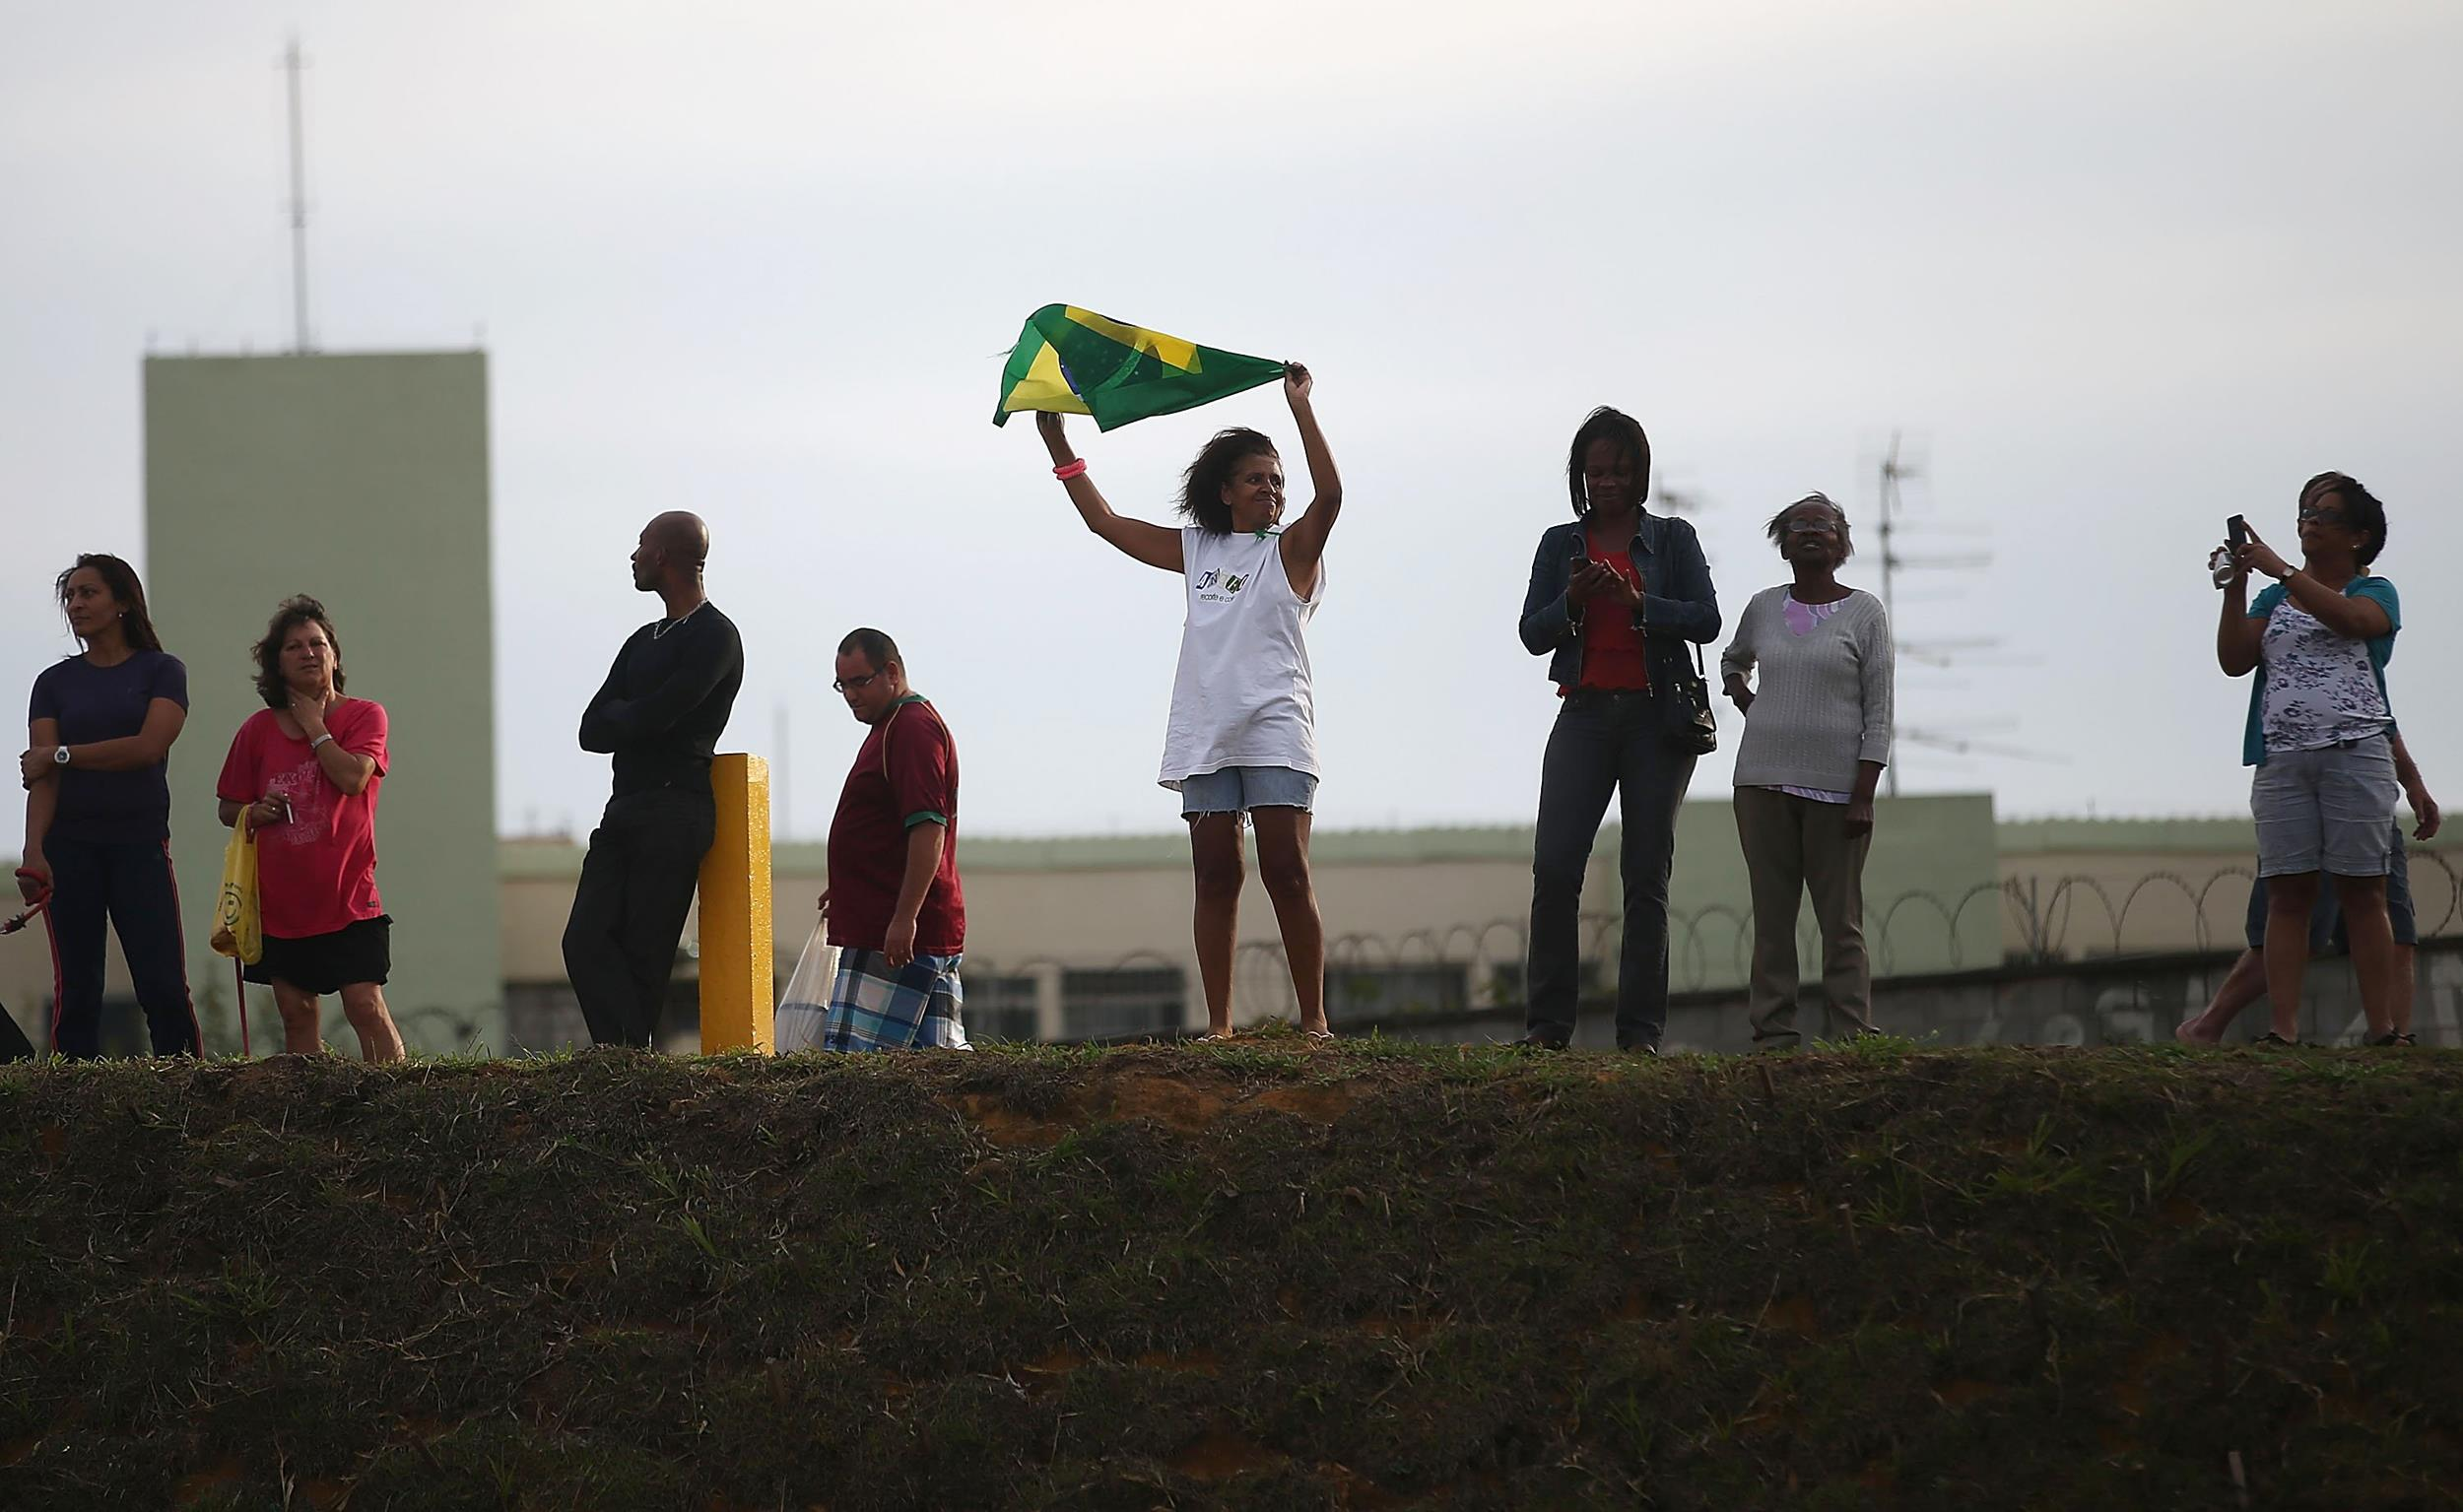 Image: A woman waves a Brazilian flag outside Itaquerao stadium